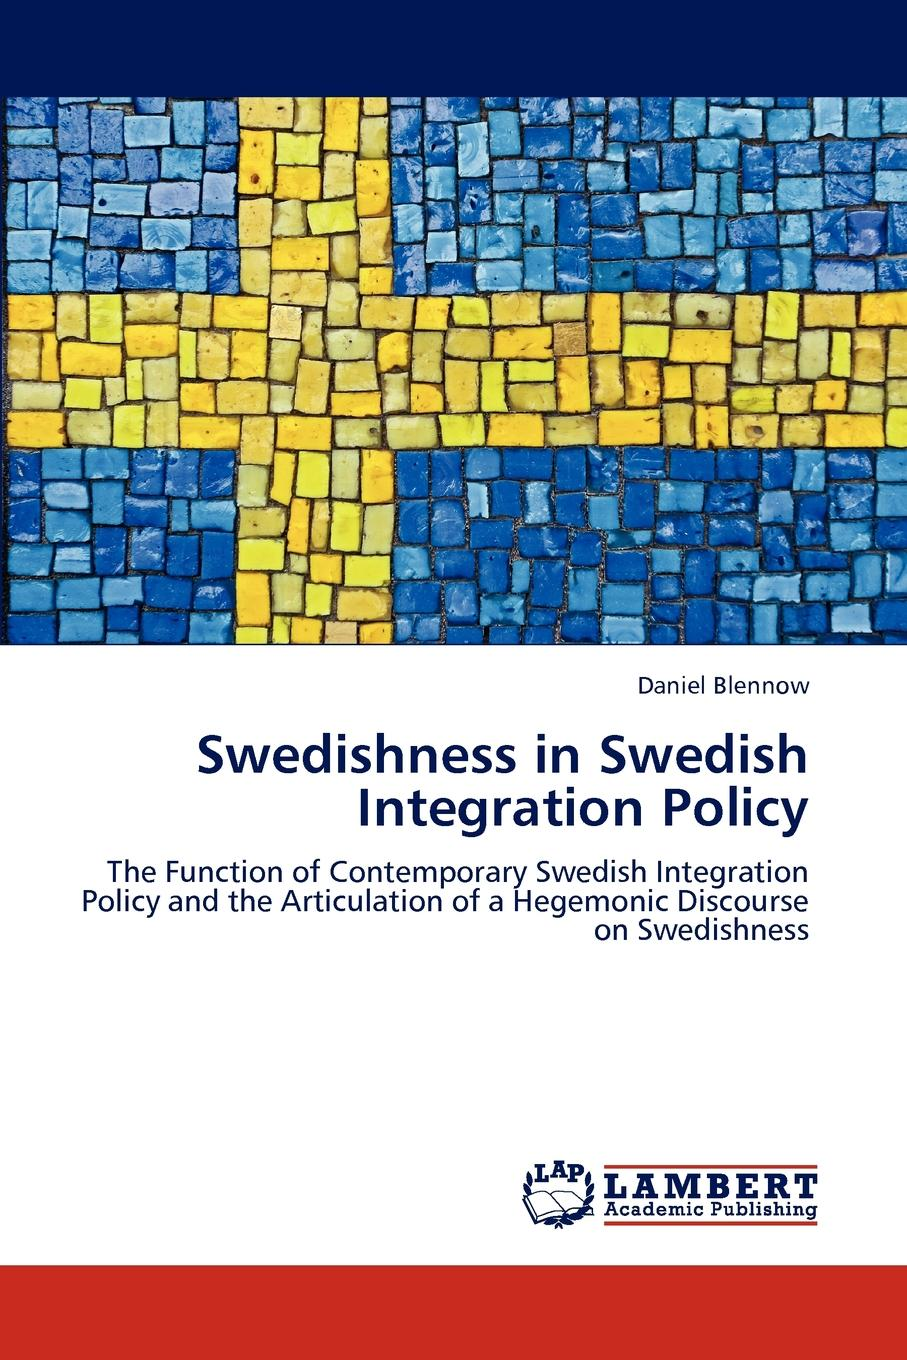 Daniel Blennow Swedishness in Swedish Integration Policy electricity market in turkey and its integration policy into the eu